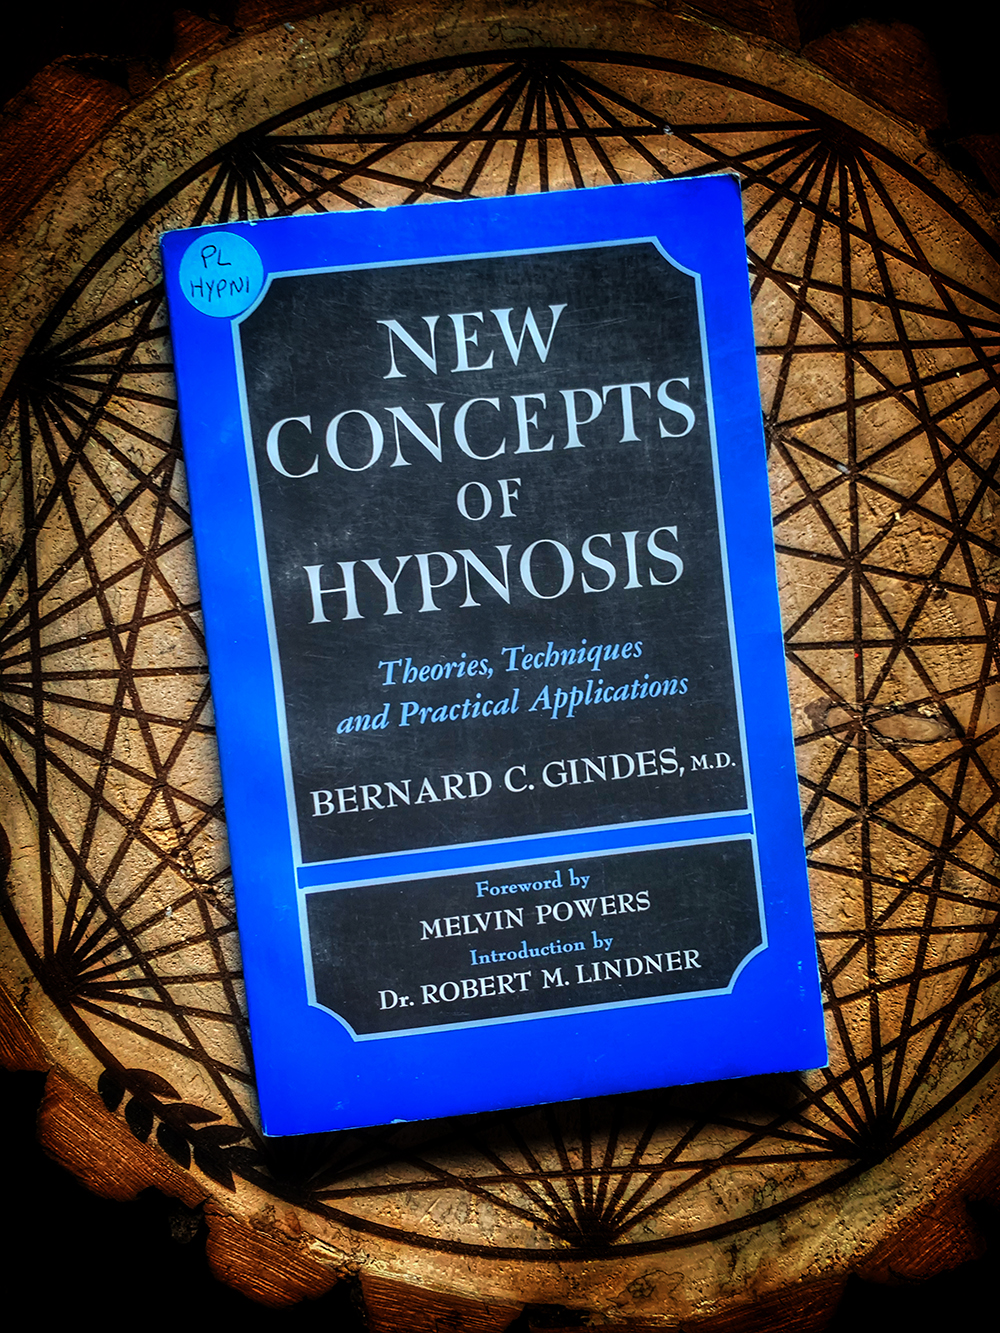 New Concepts of Hypnosis: Theories, Techniques and Practical Applications